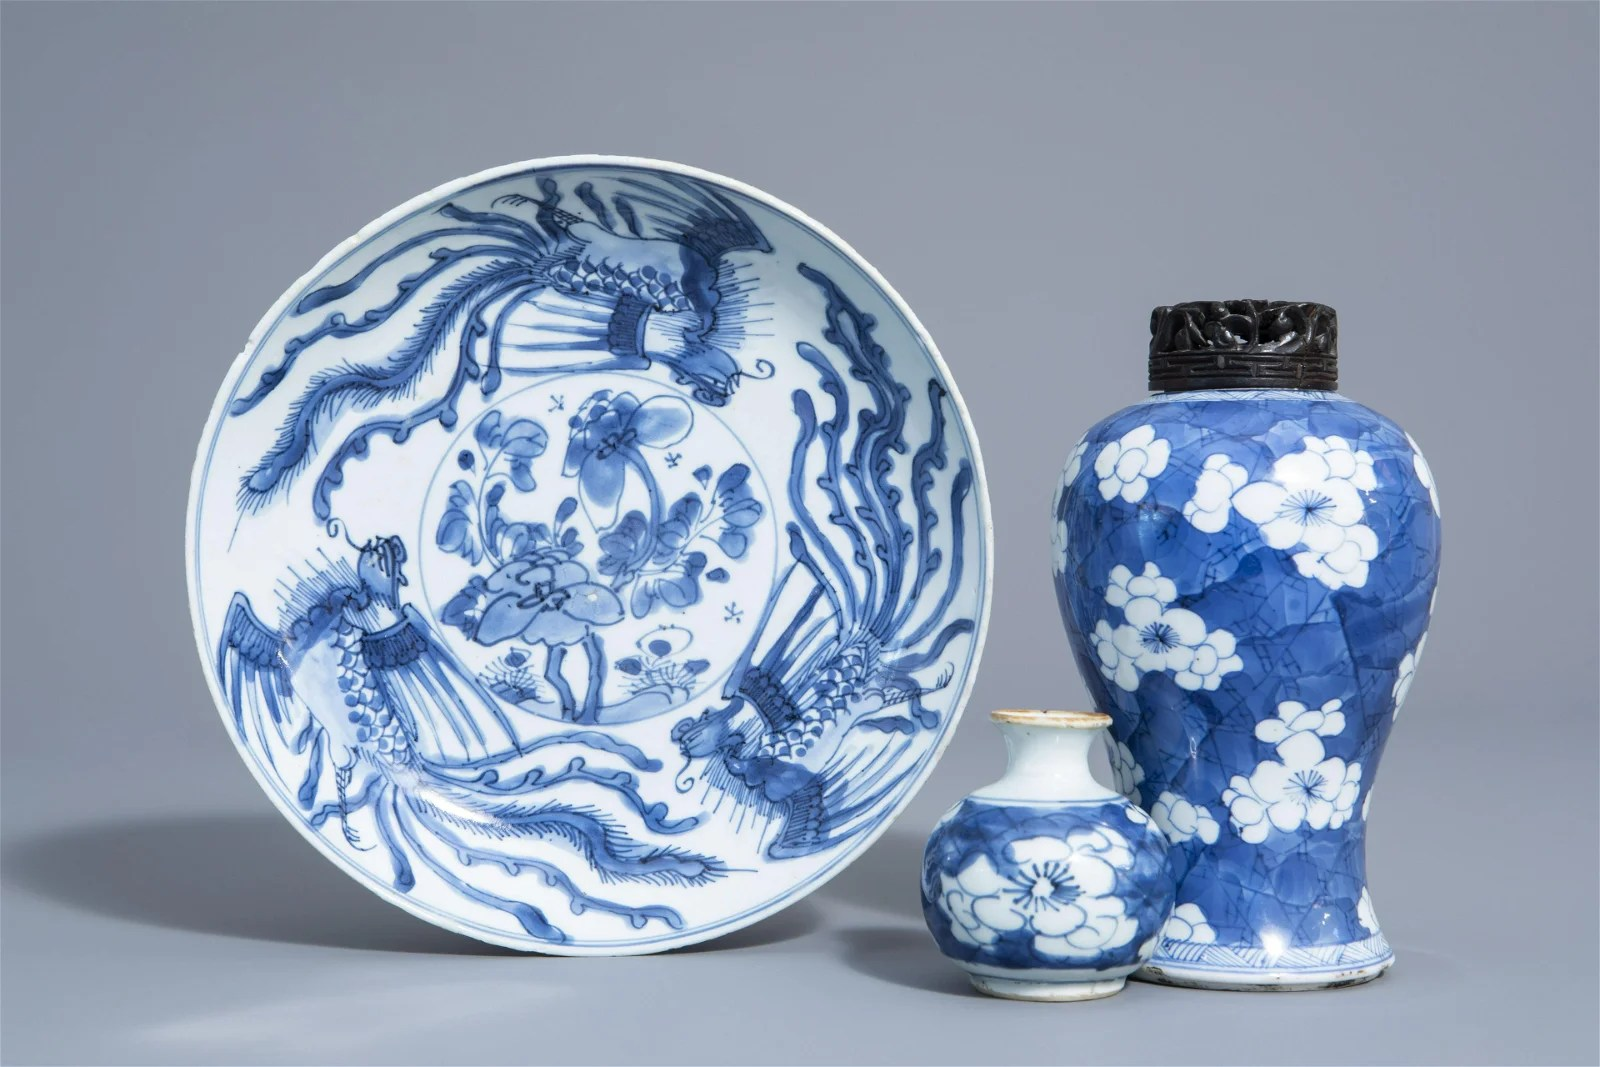 Two Chinese blue and white vases and a dish with